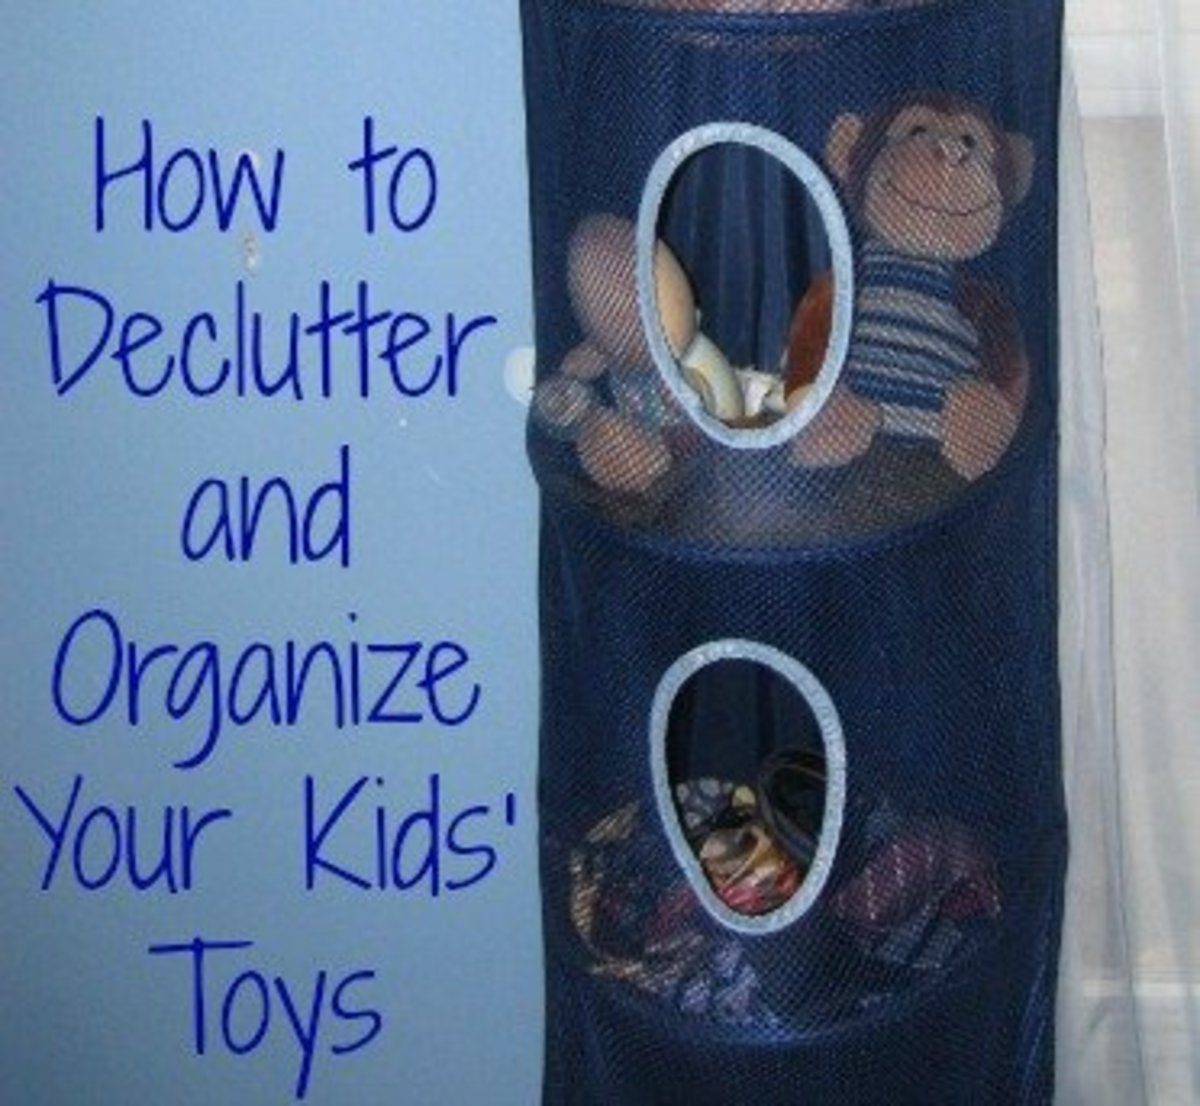 Learn how to declutter and organize your kids' toys.